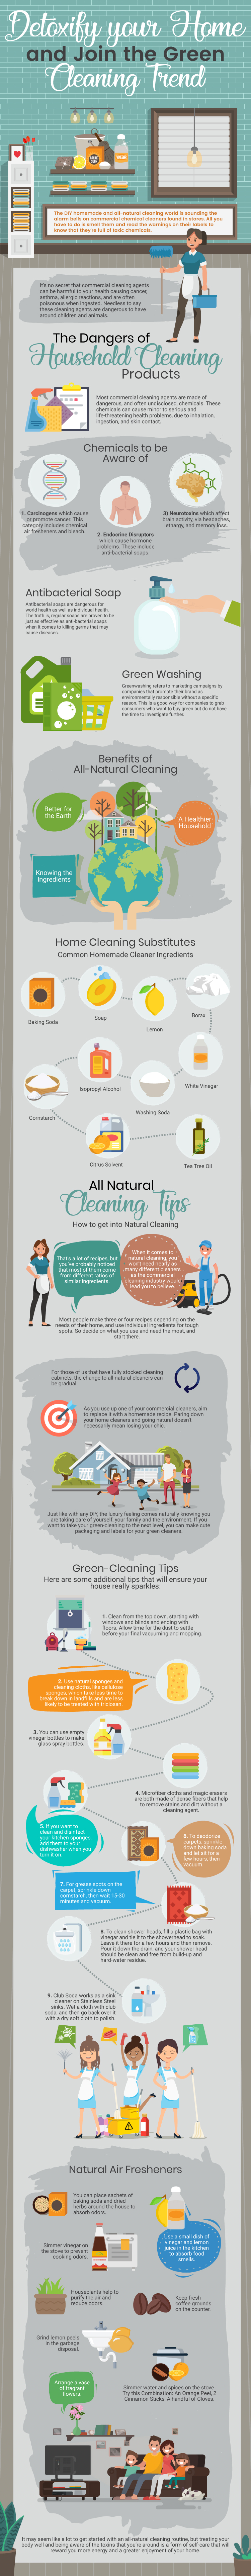 Detoxify Your Home and Join the Green Cleaning Trend